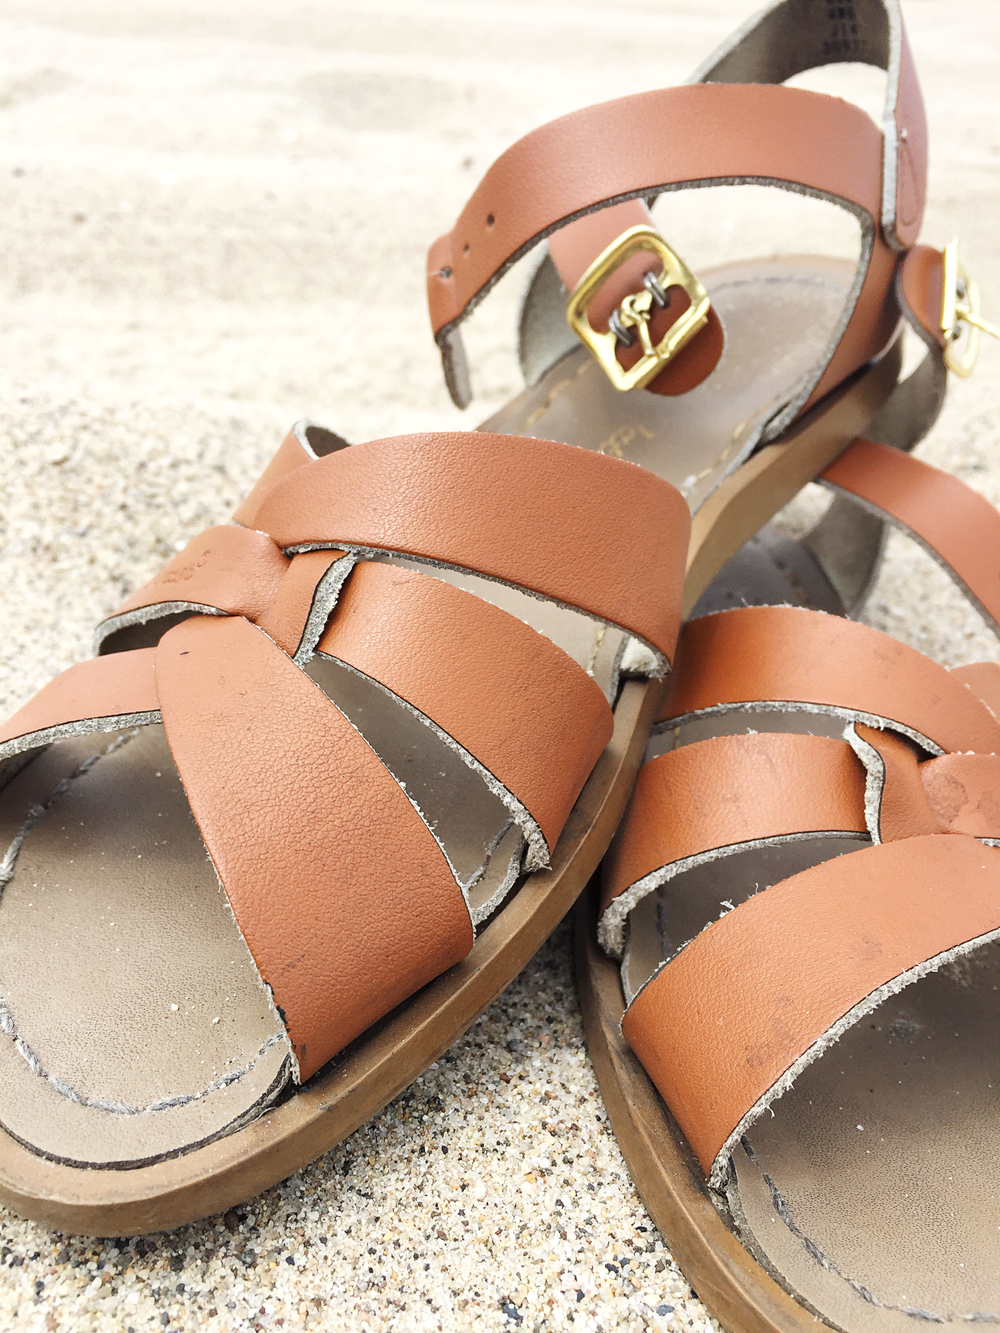 Salt Water Sandals Close-Up